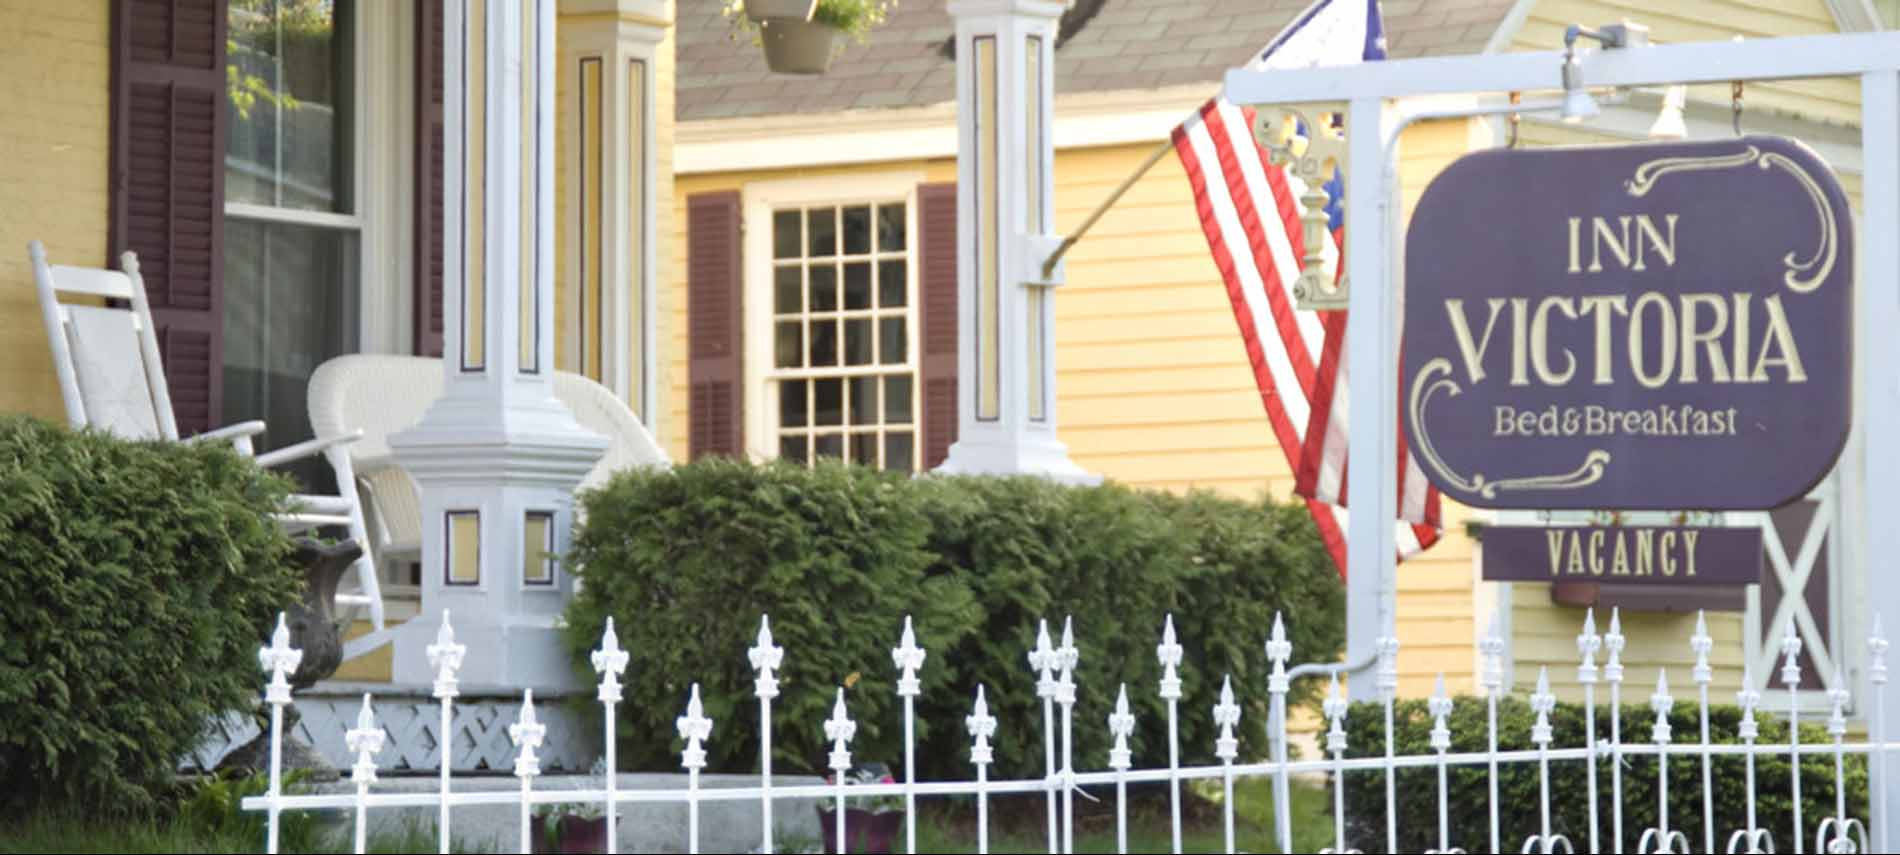 Inn Victoria: Bed and Breakfast in Chester Vermont